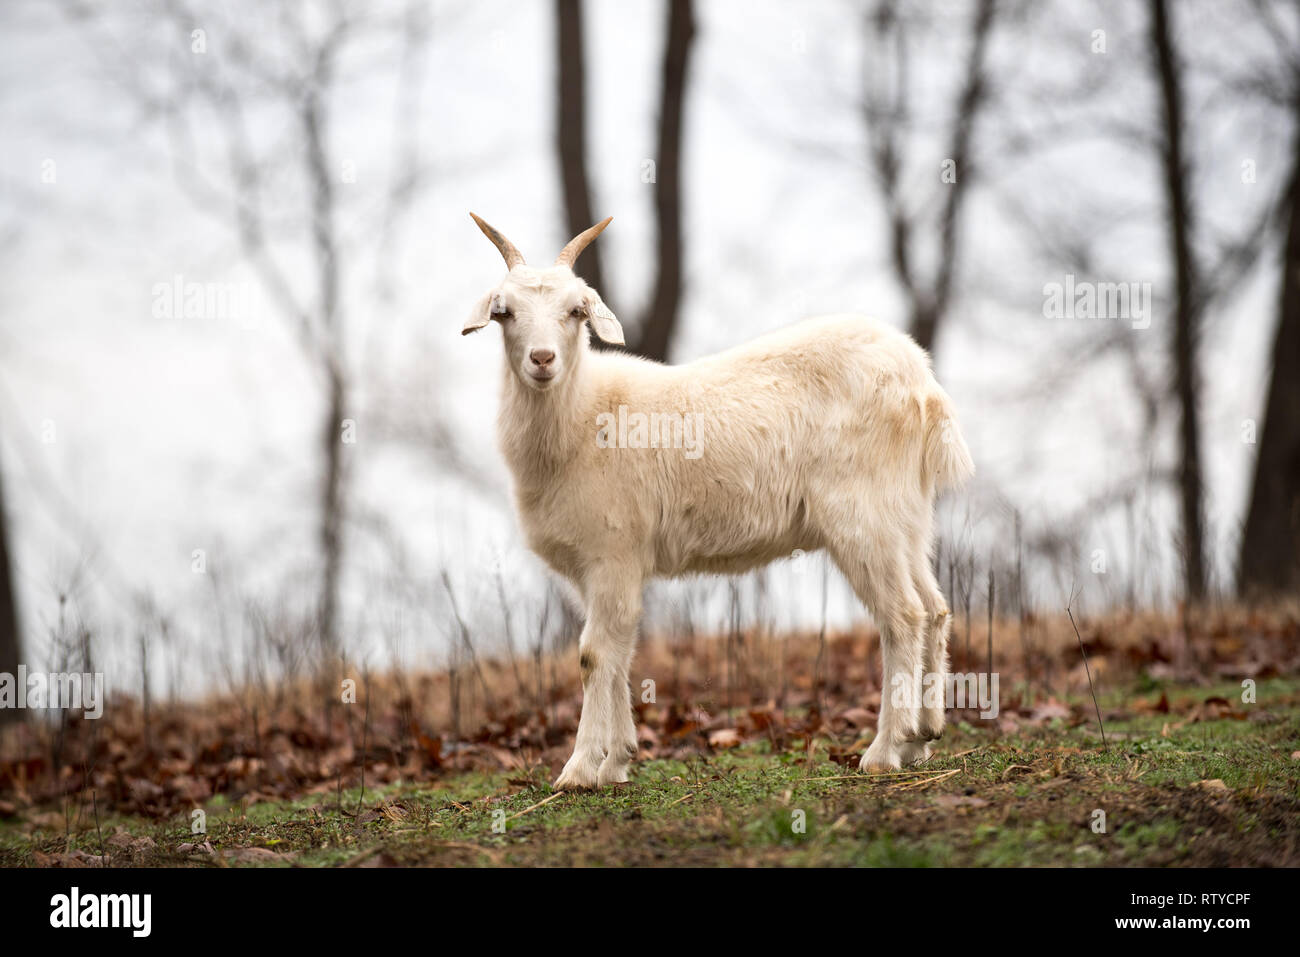 Horned Goats Stock Photos Horned Goats Stock Images Alamy